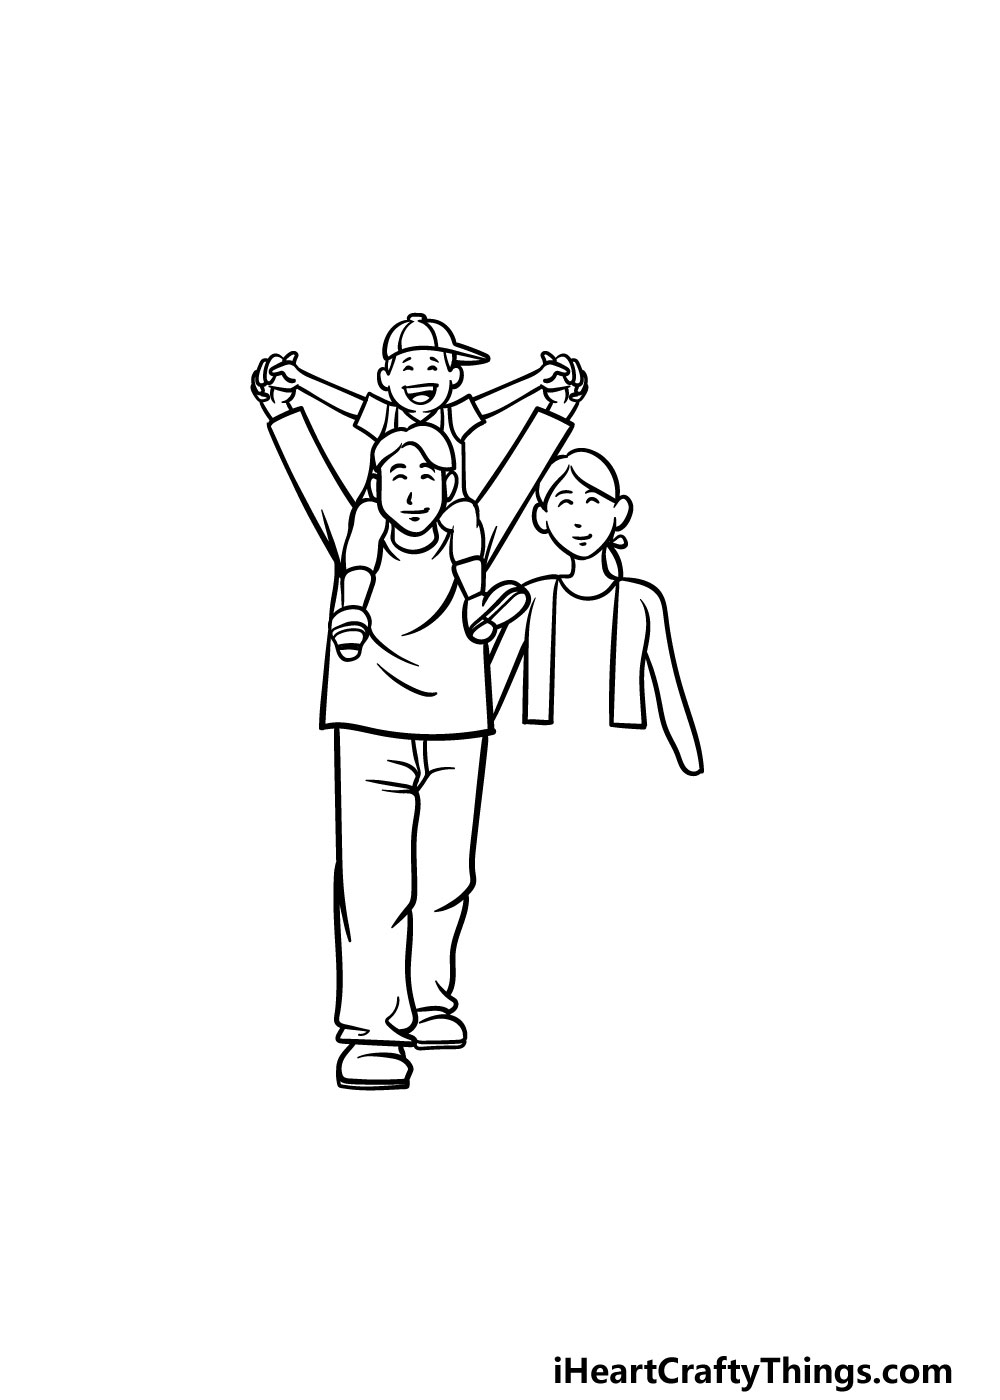 drawing a family step 6